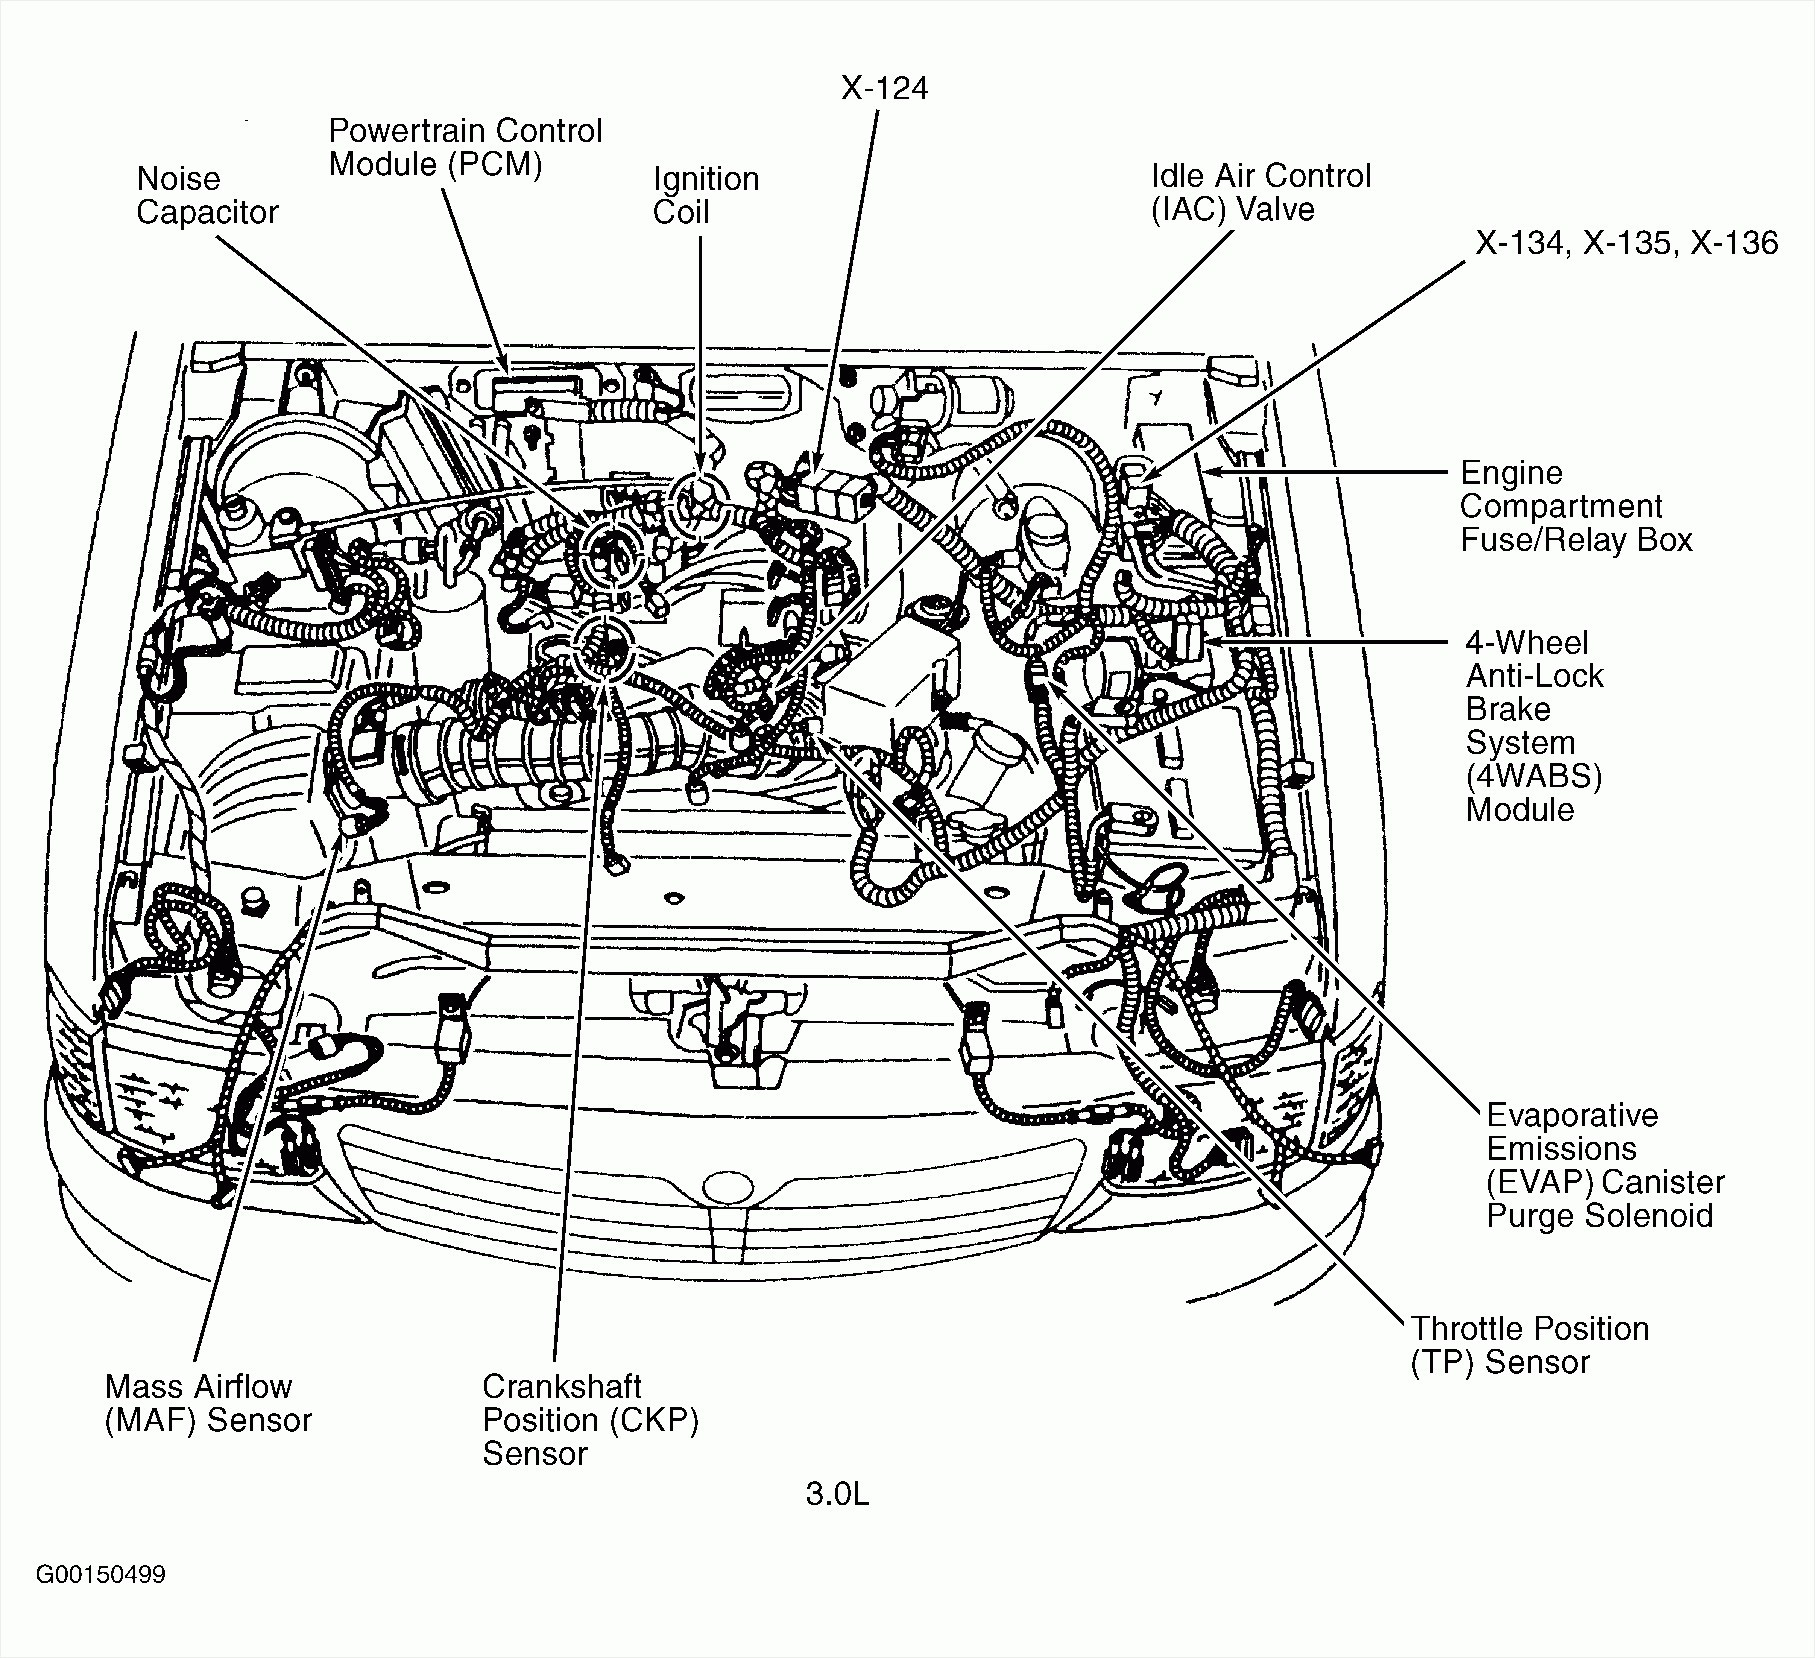 1995 ford taurus v6 engine diagram - number wiring diagram done-a -  done-a.italiatg24.it  italiatg24.it